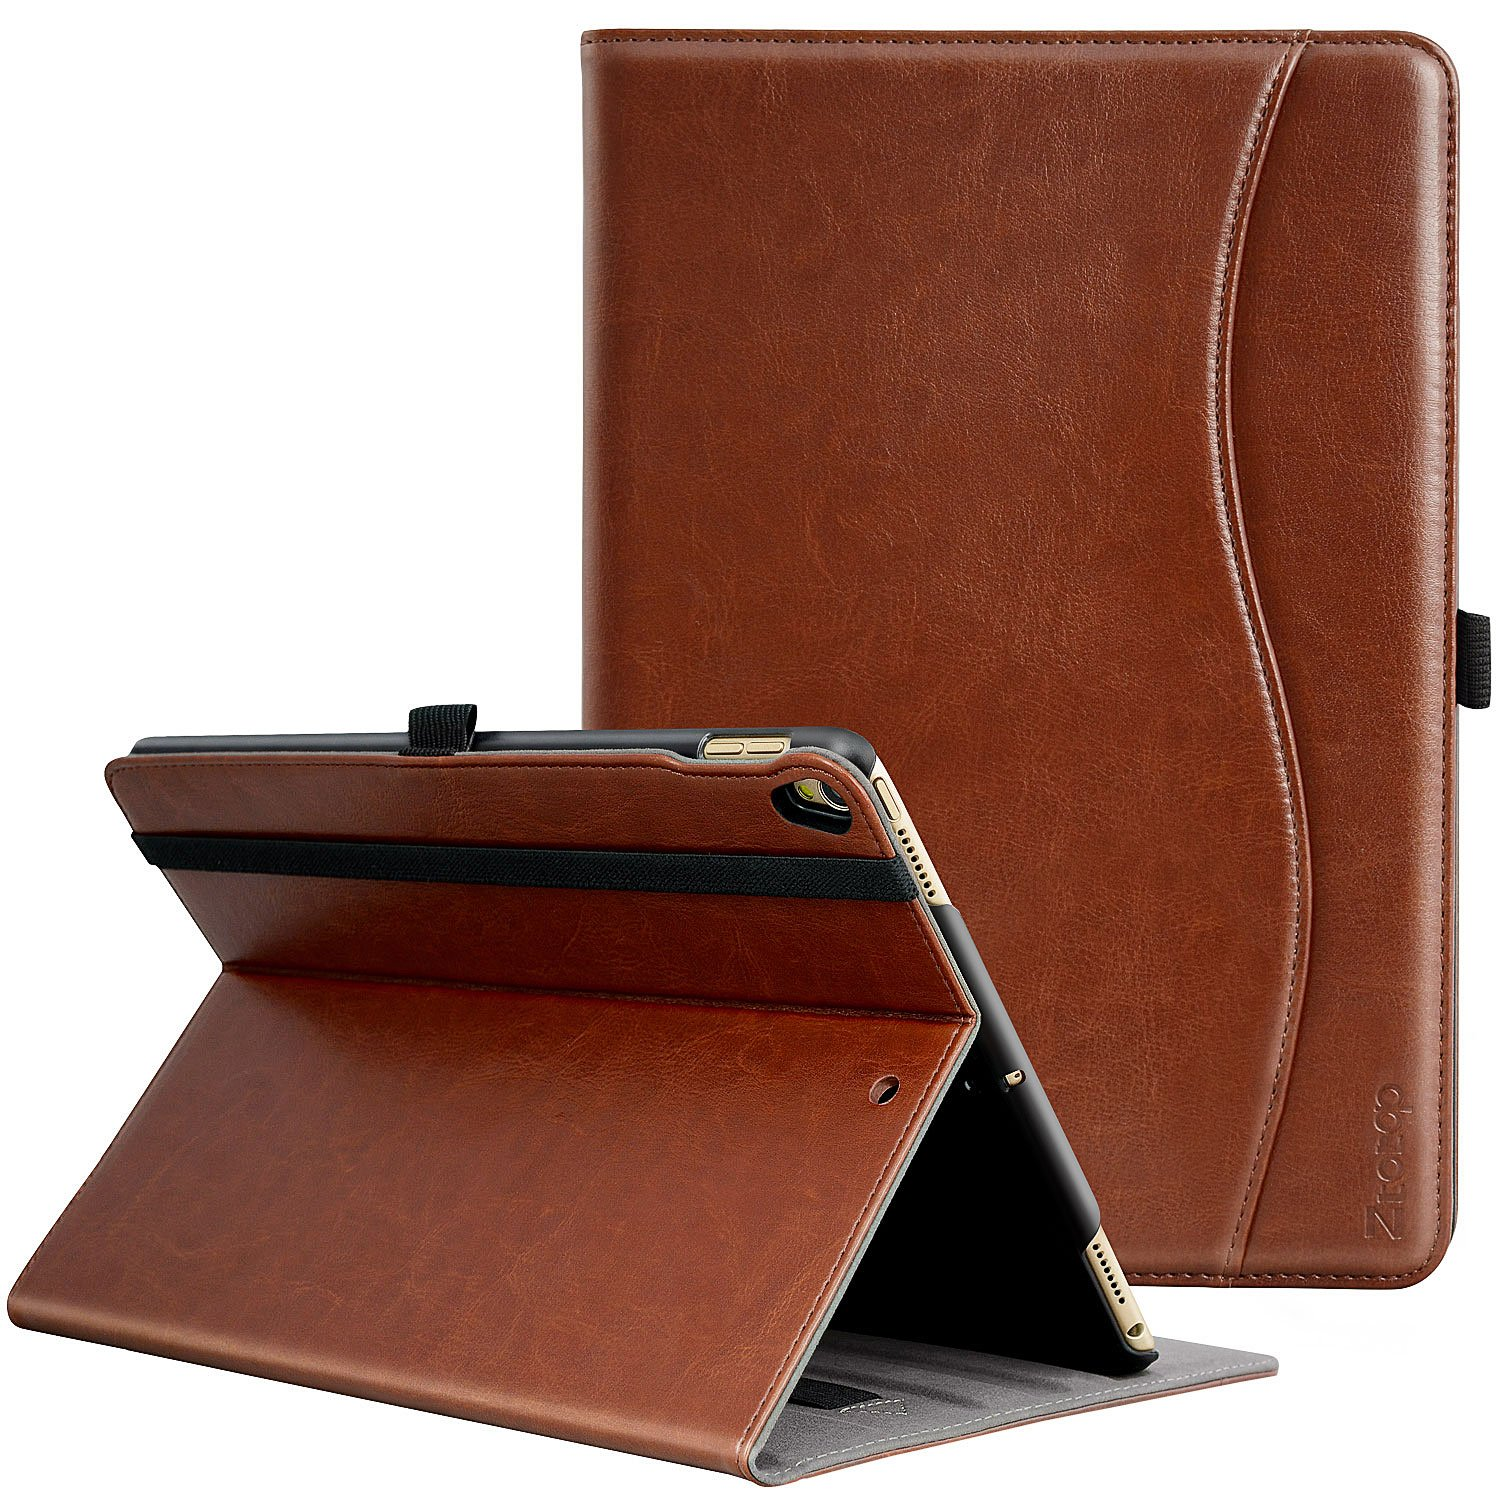 IPad Pro 10.5 Inch 2017 Case, Ztotop Premium Leather Business Slim Folding Stand Folio Cover for New Apple Tablet with Auto Wake/Sleep and Document Card Slots, Multiple Viewing Angles,Brown ZTPCASE105-001